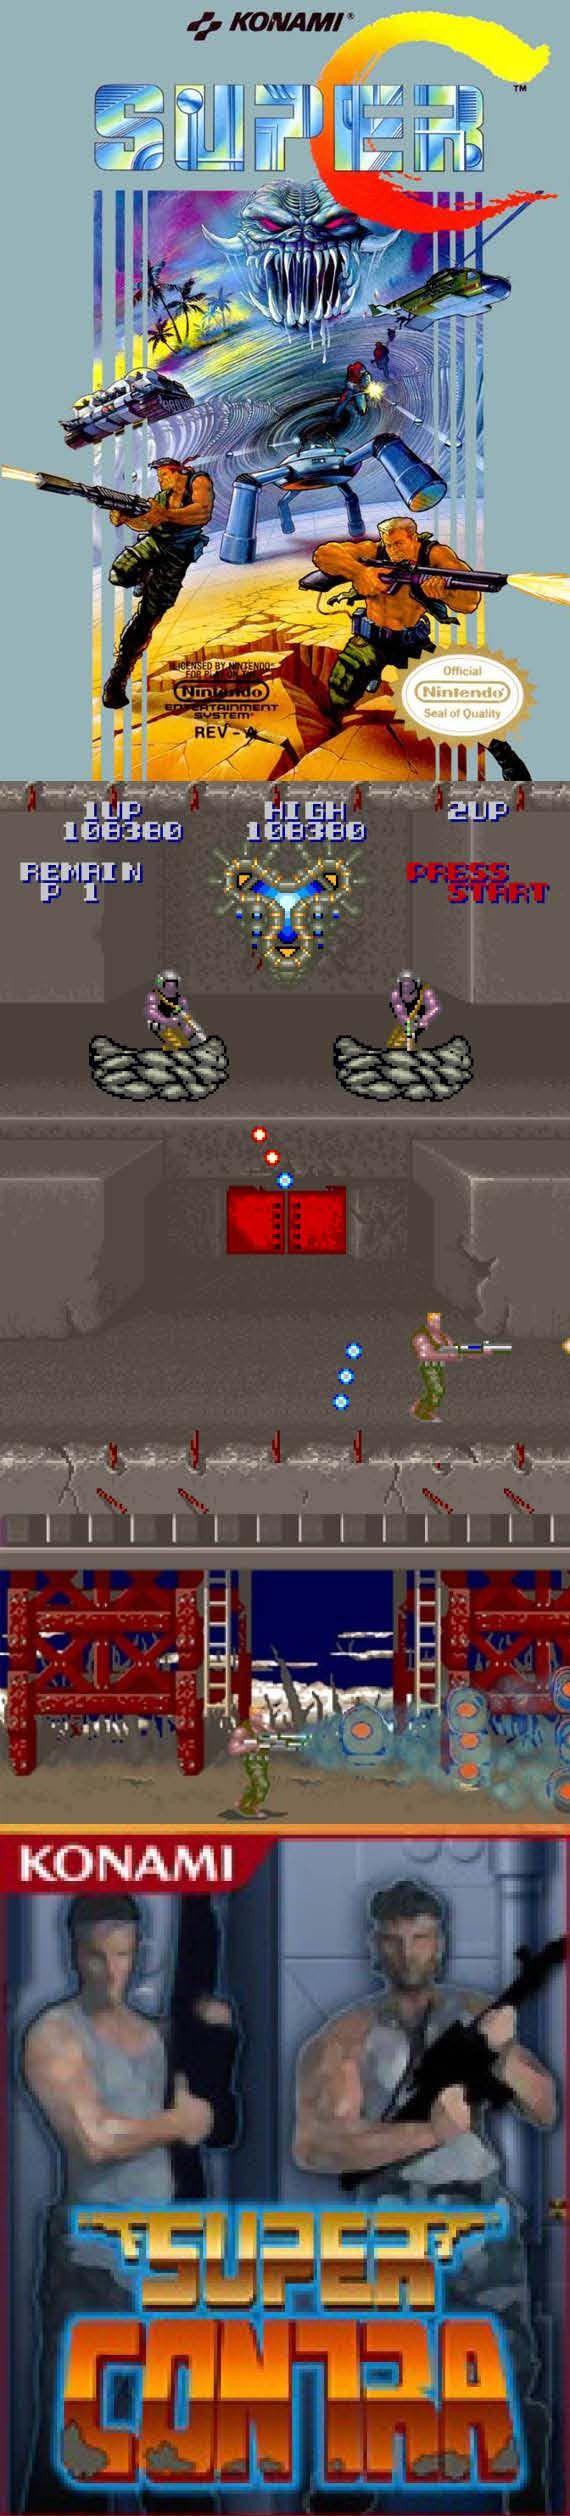 retrogamer the super contra remake does not feel like old or new school gaming pixel gamesretro